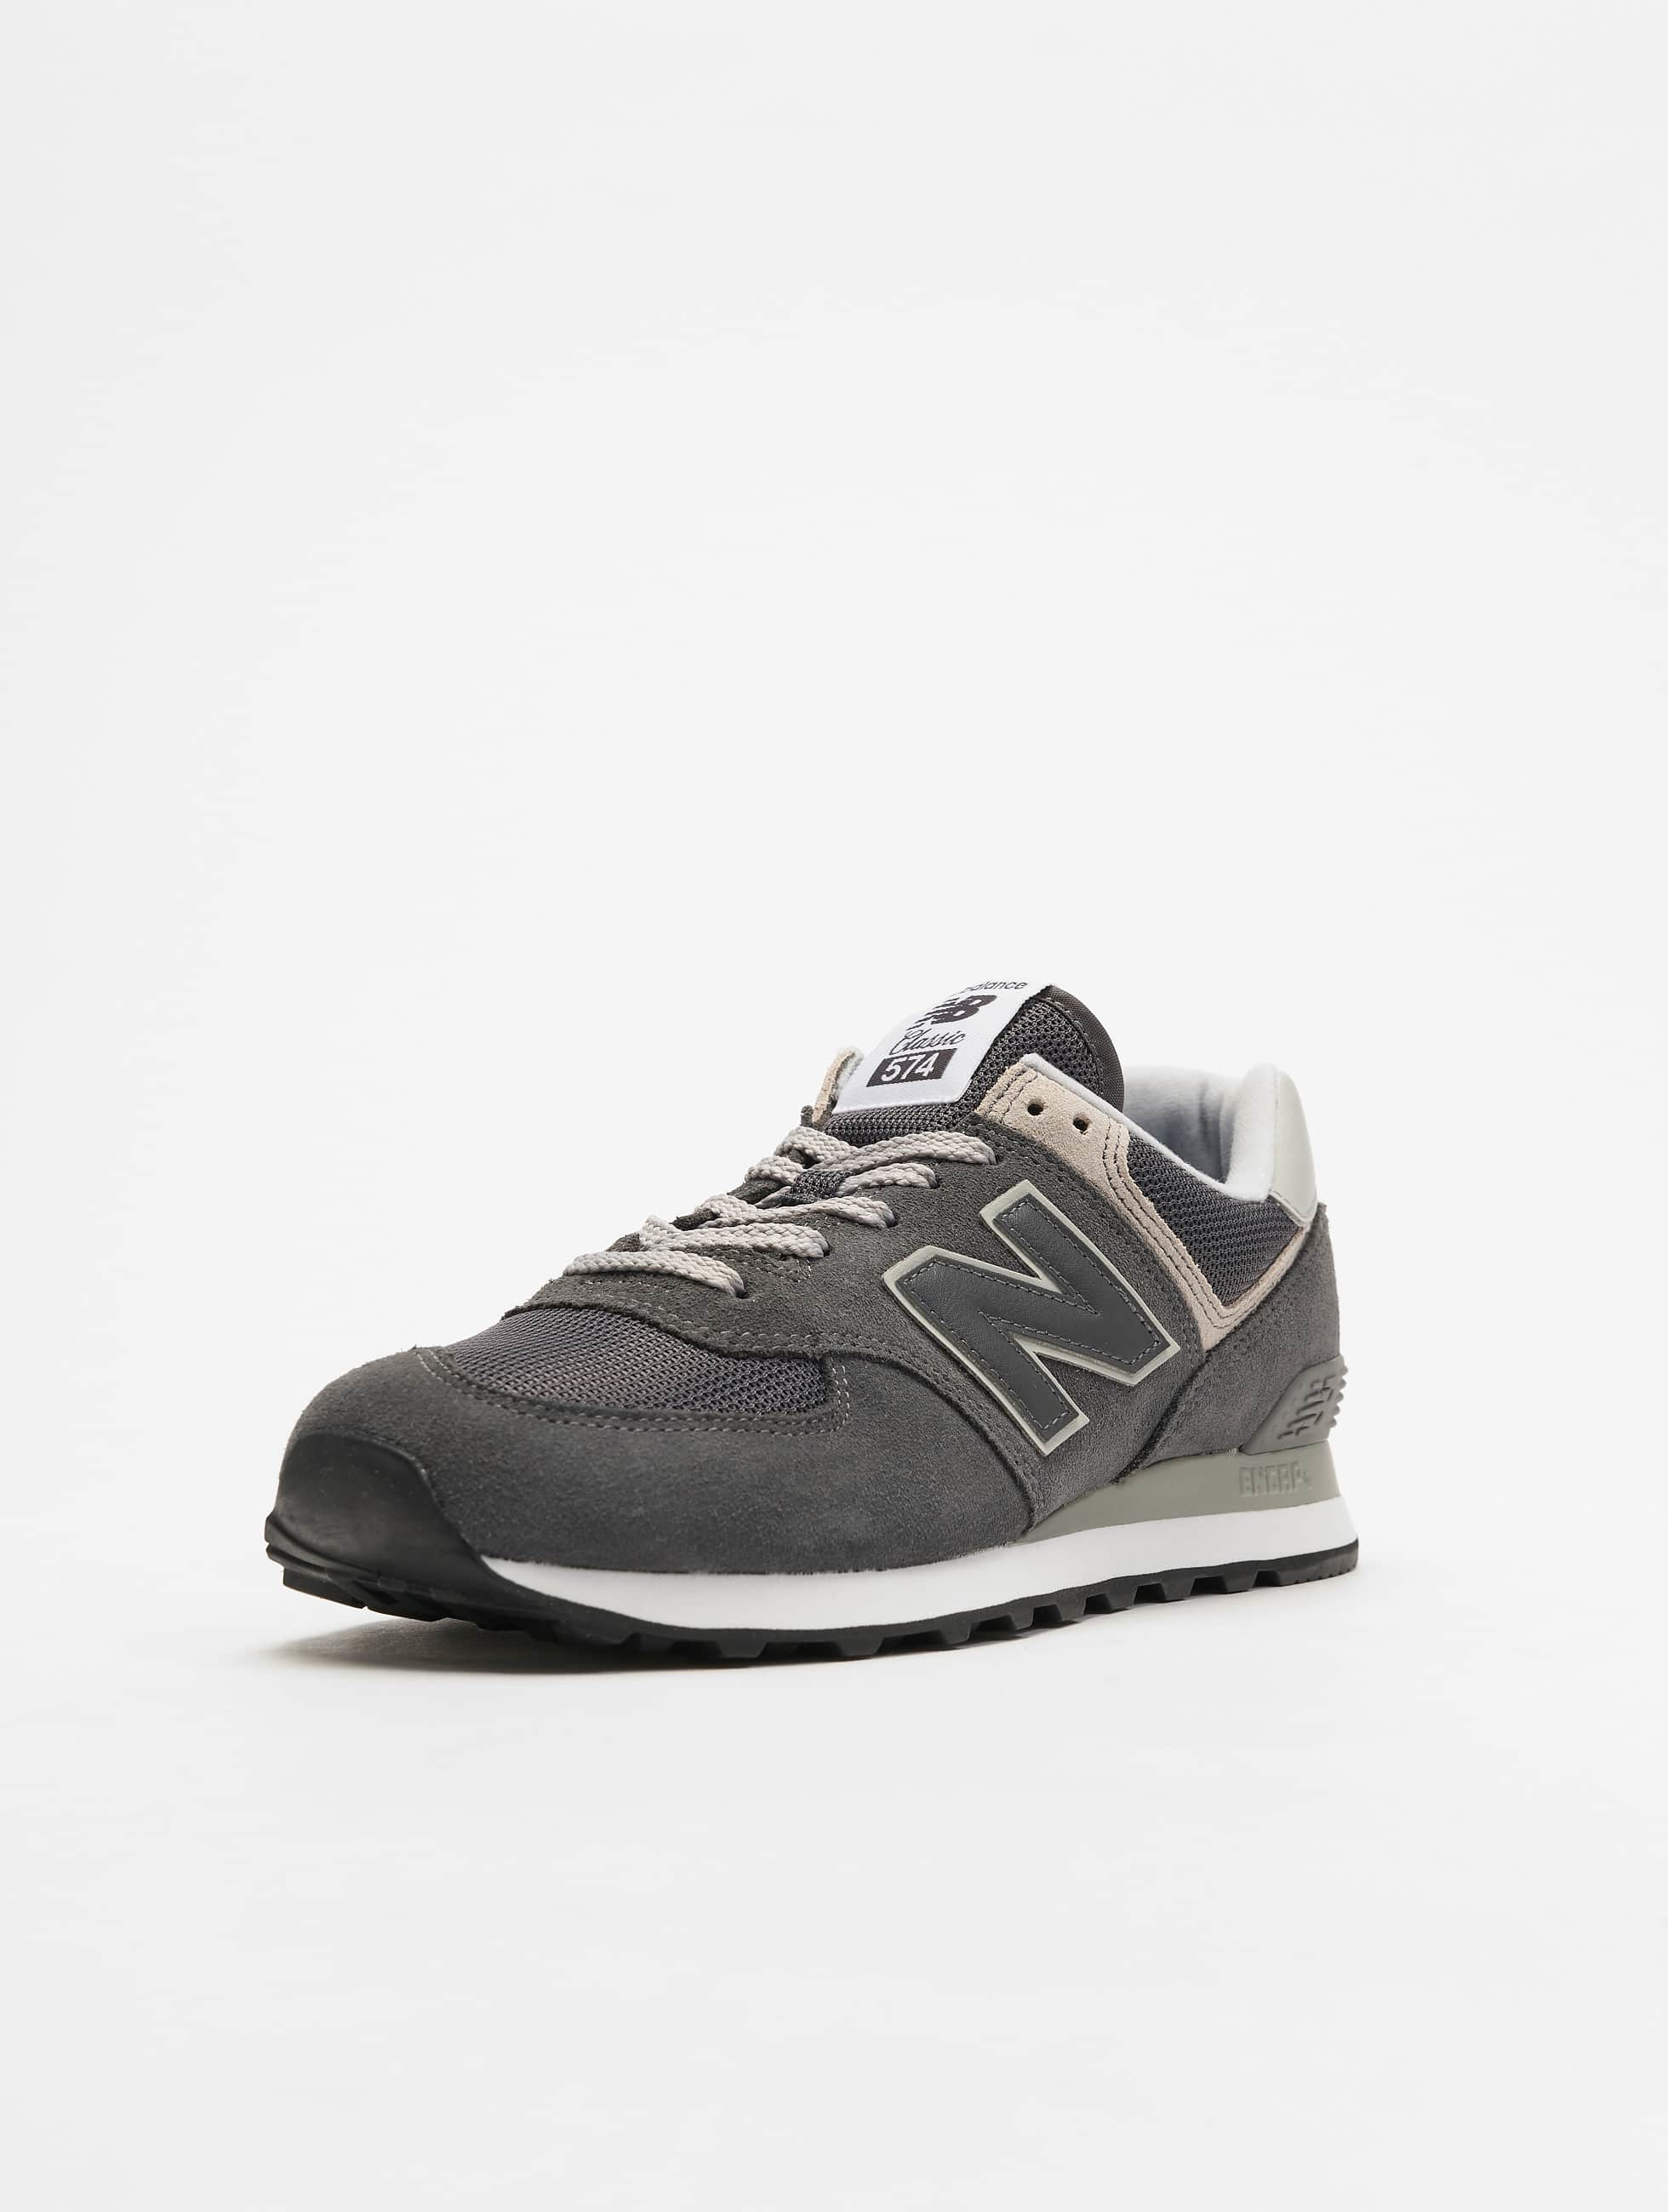 Baskets Chaussures Ml574 Homme New Balance qPAxvfw1